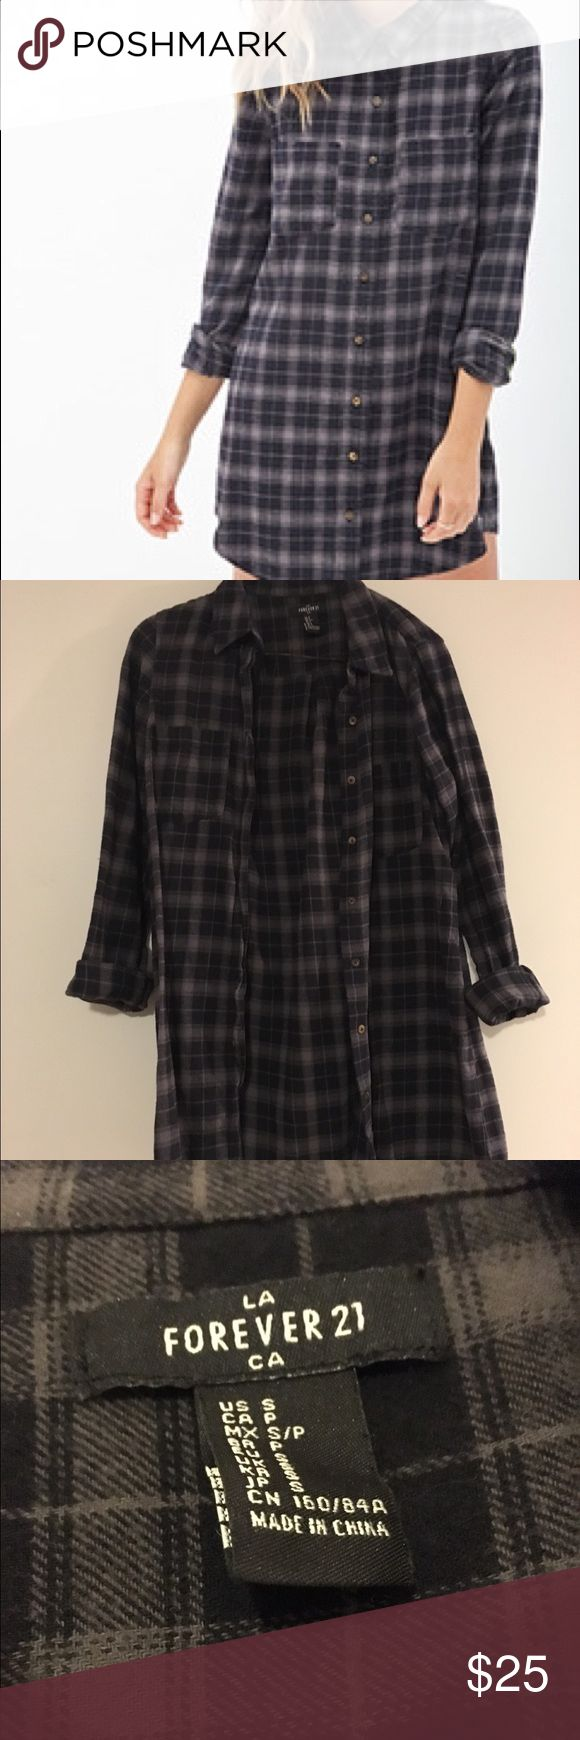 Forever 21 Plaid Flannel Shirt Dress Only been worn a handful of times and is in great condition. Forever 21 Tops Button Down Shirts